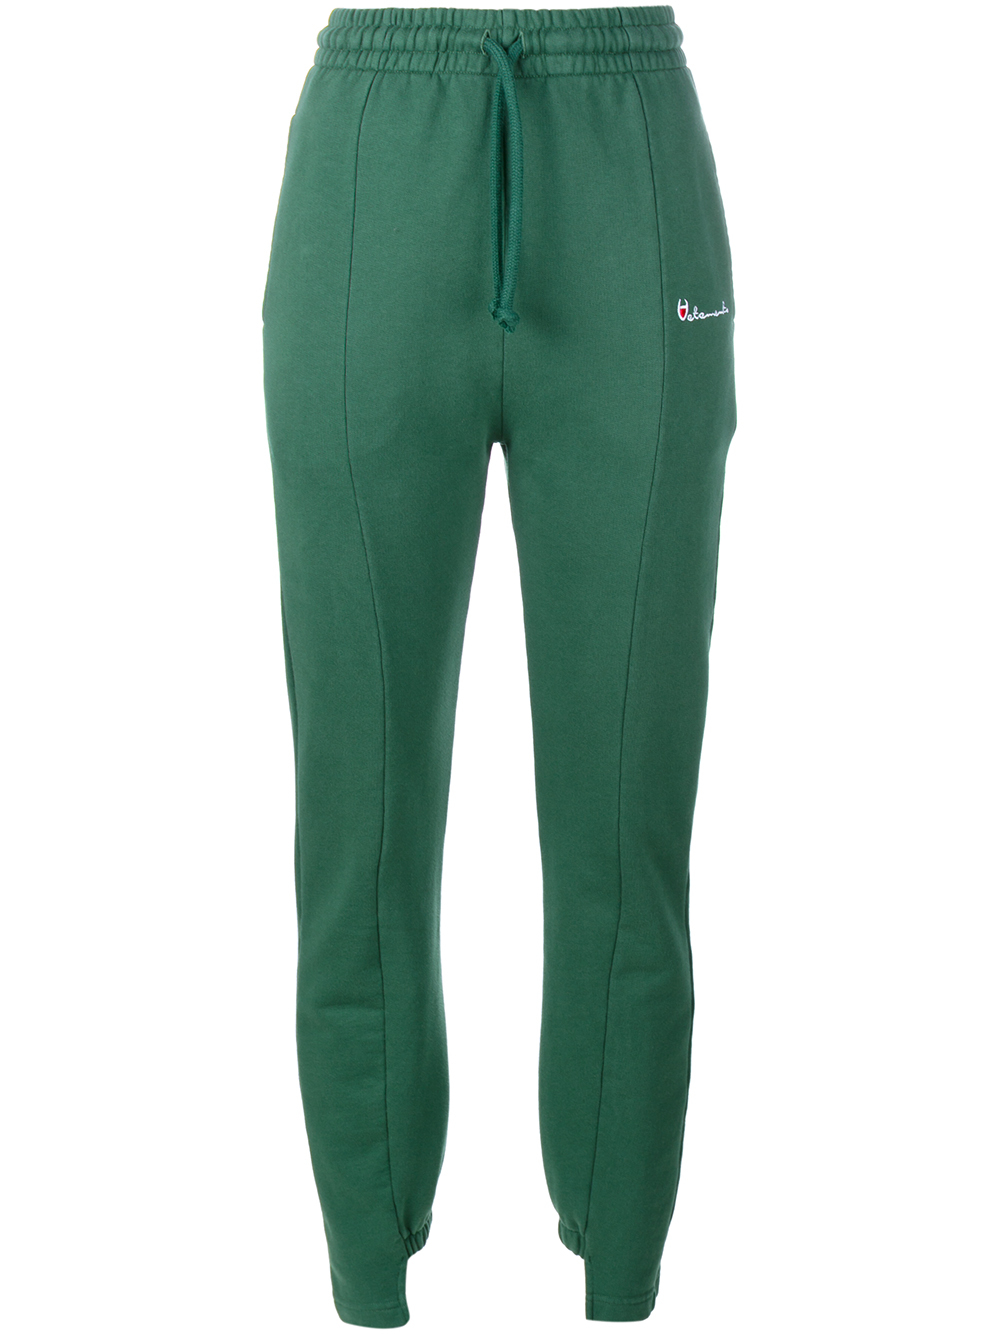 Vetements Cut-out Cuff Sweat Pants in Green | Lyst